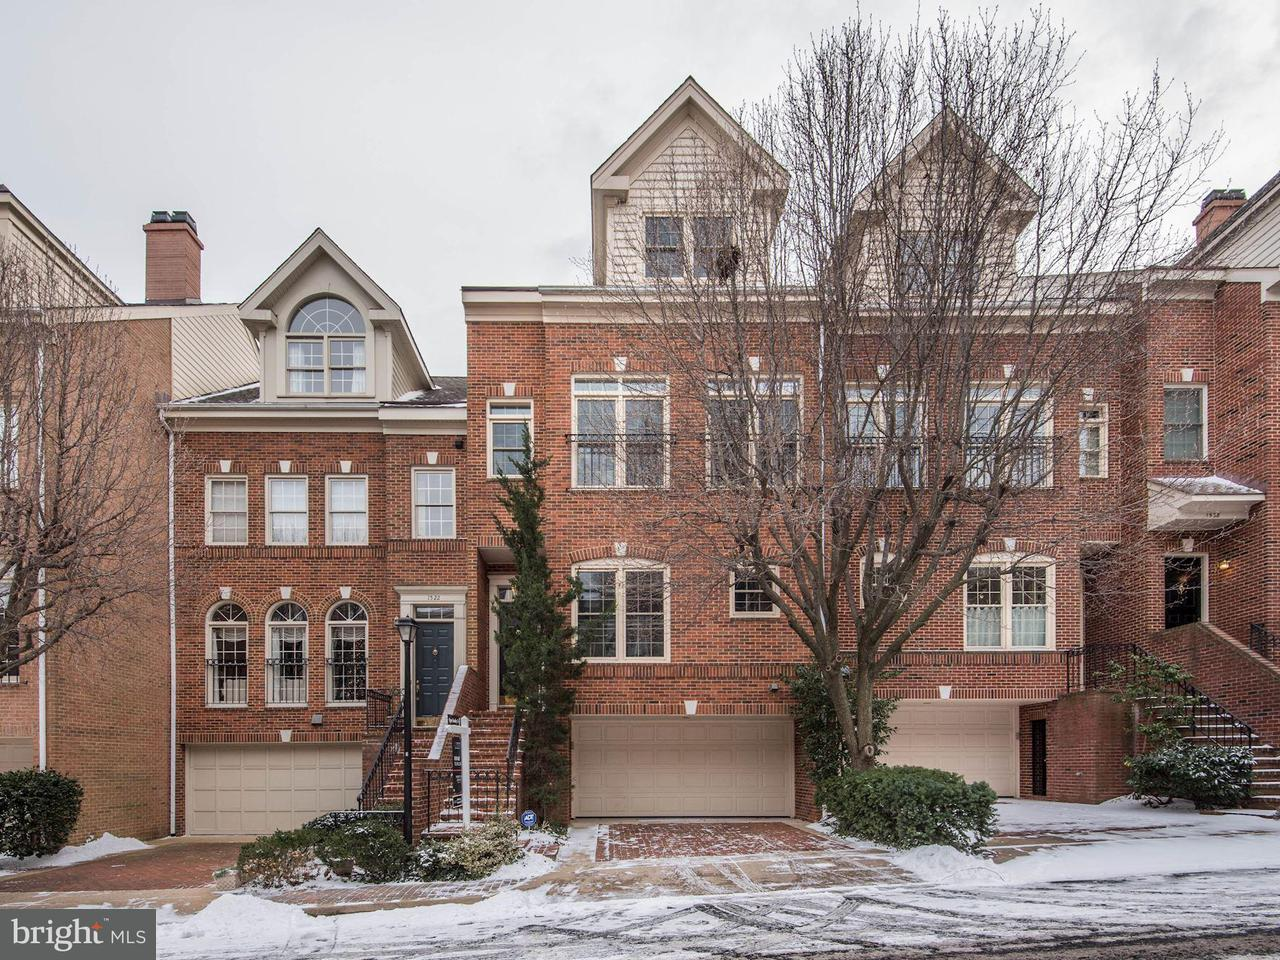 Townhouse for Sale at 1524 Colonial Ct N 1524 Colonial Ct N Arlington, Virginia 22209 United States